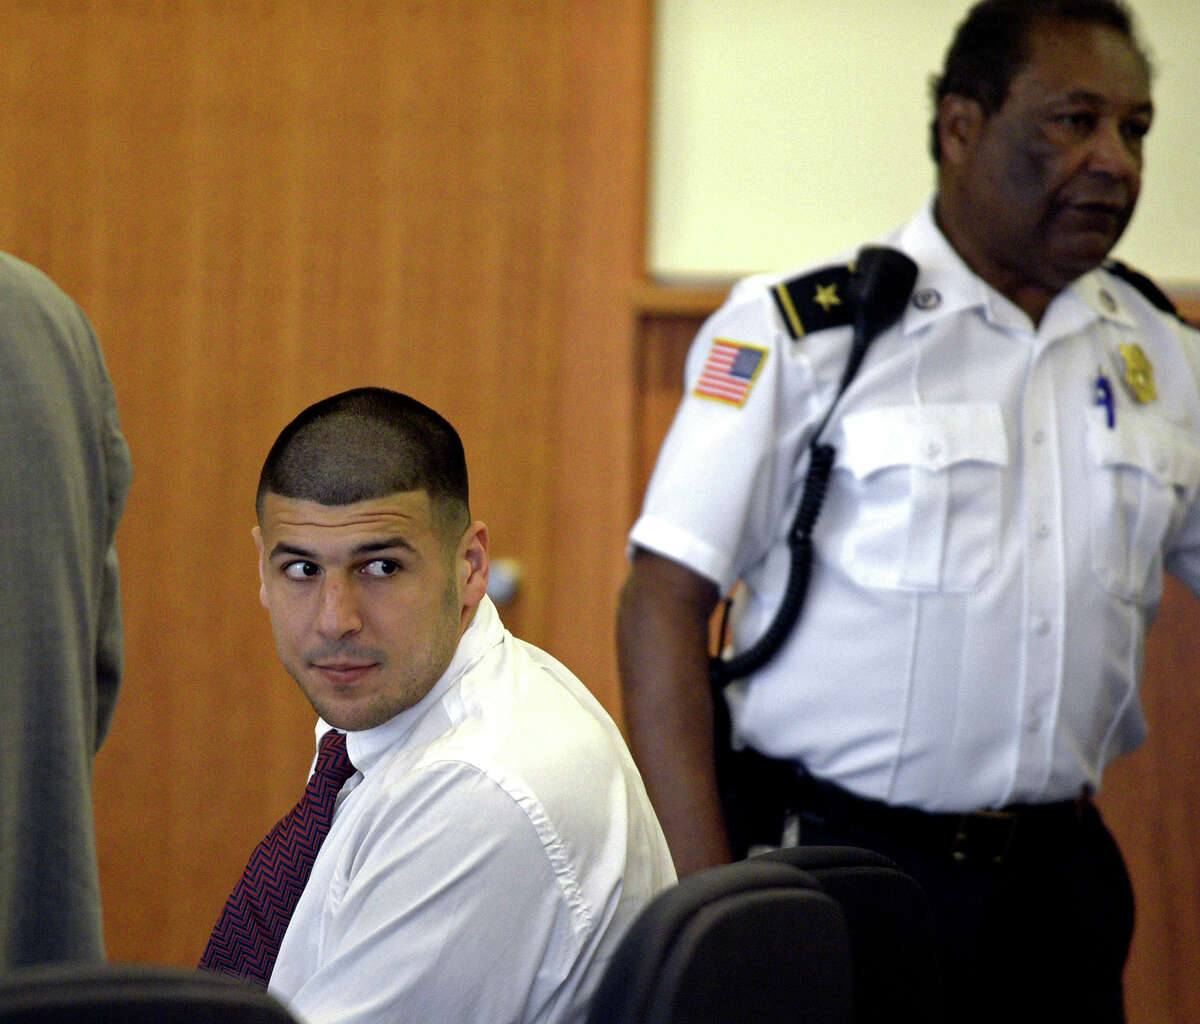 Former New England Patriots tight end Aaron Hernandez looks back during a hearing on Tuesday in Fall River Superior Court in Fall River, Mass.